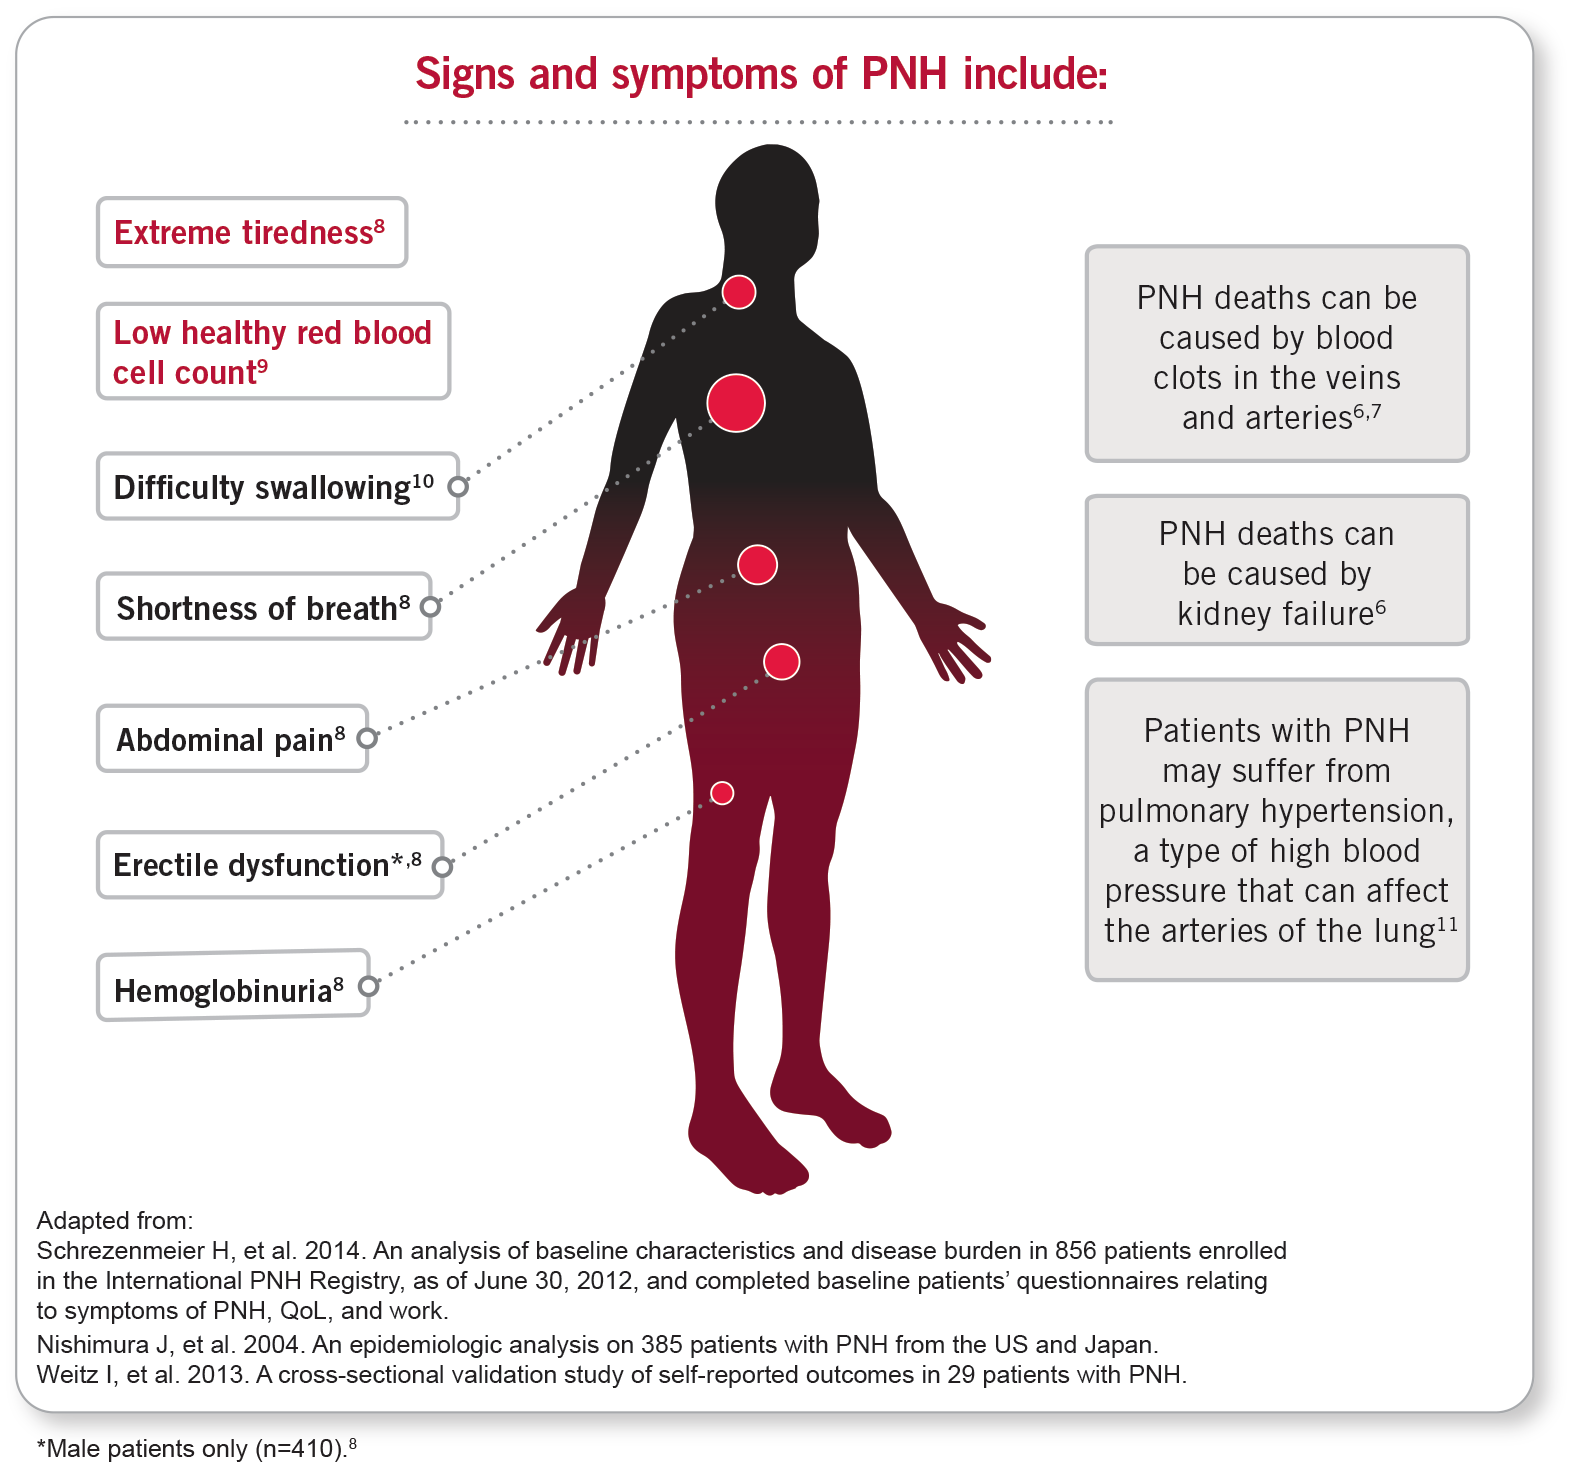 Signs and Symptoms of PNH